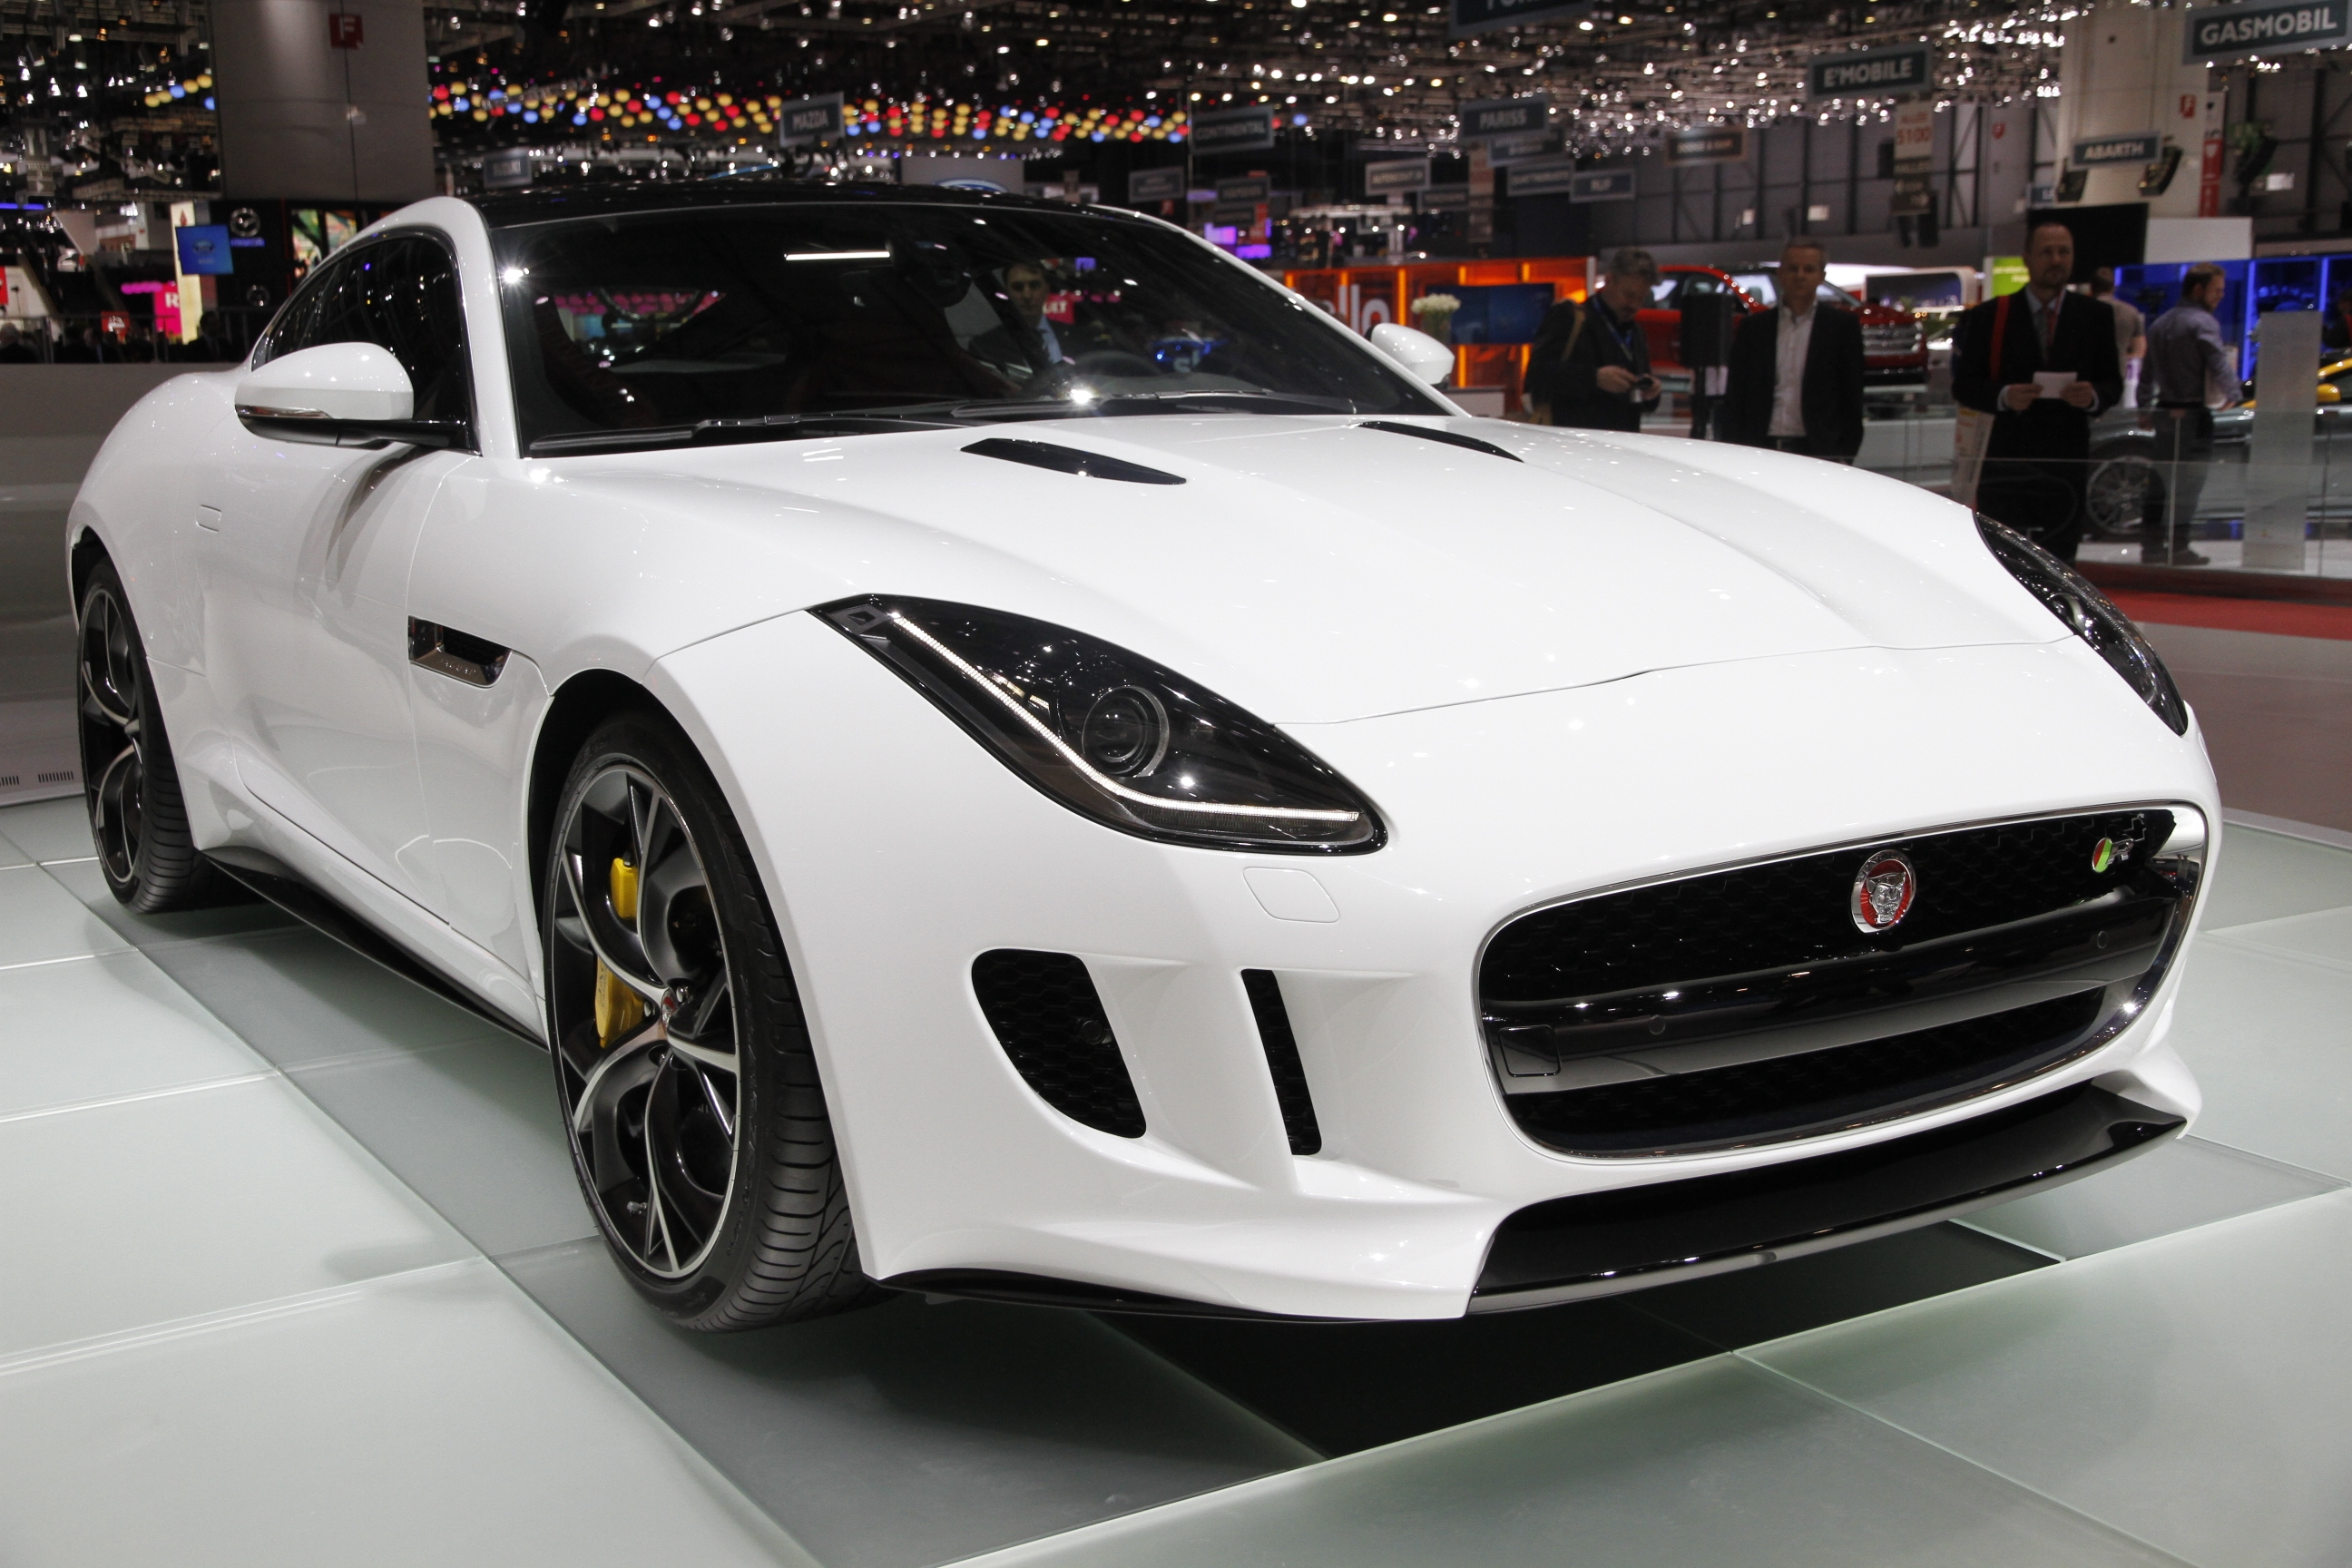 vid o en direct de gen ve 2014 jaguar f type coup l 39 t c 39 est toujours mieux avec un chapeau. Black Bedroom Furniture Sets. Home Design Ideas